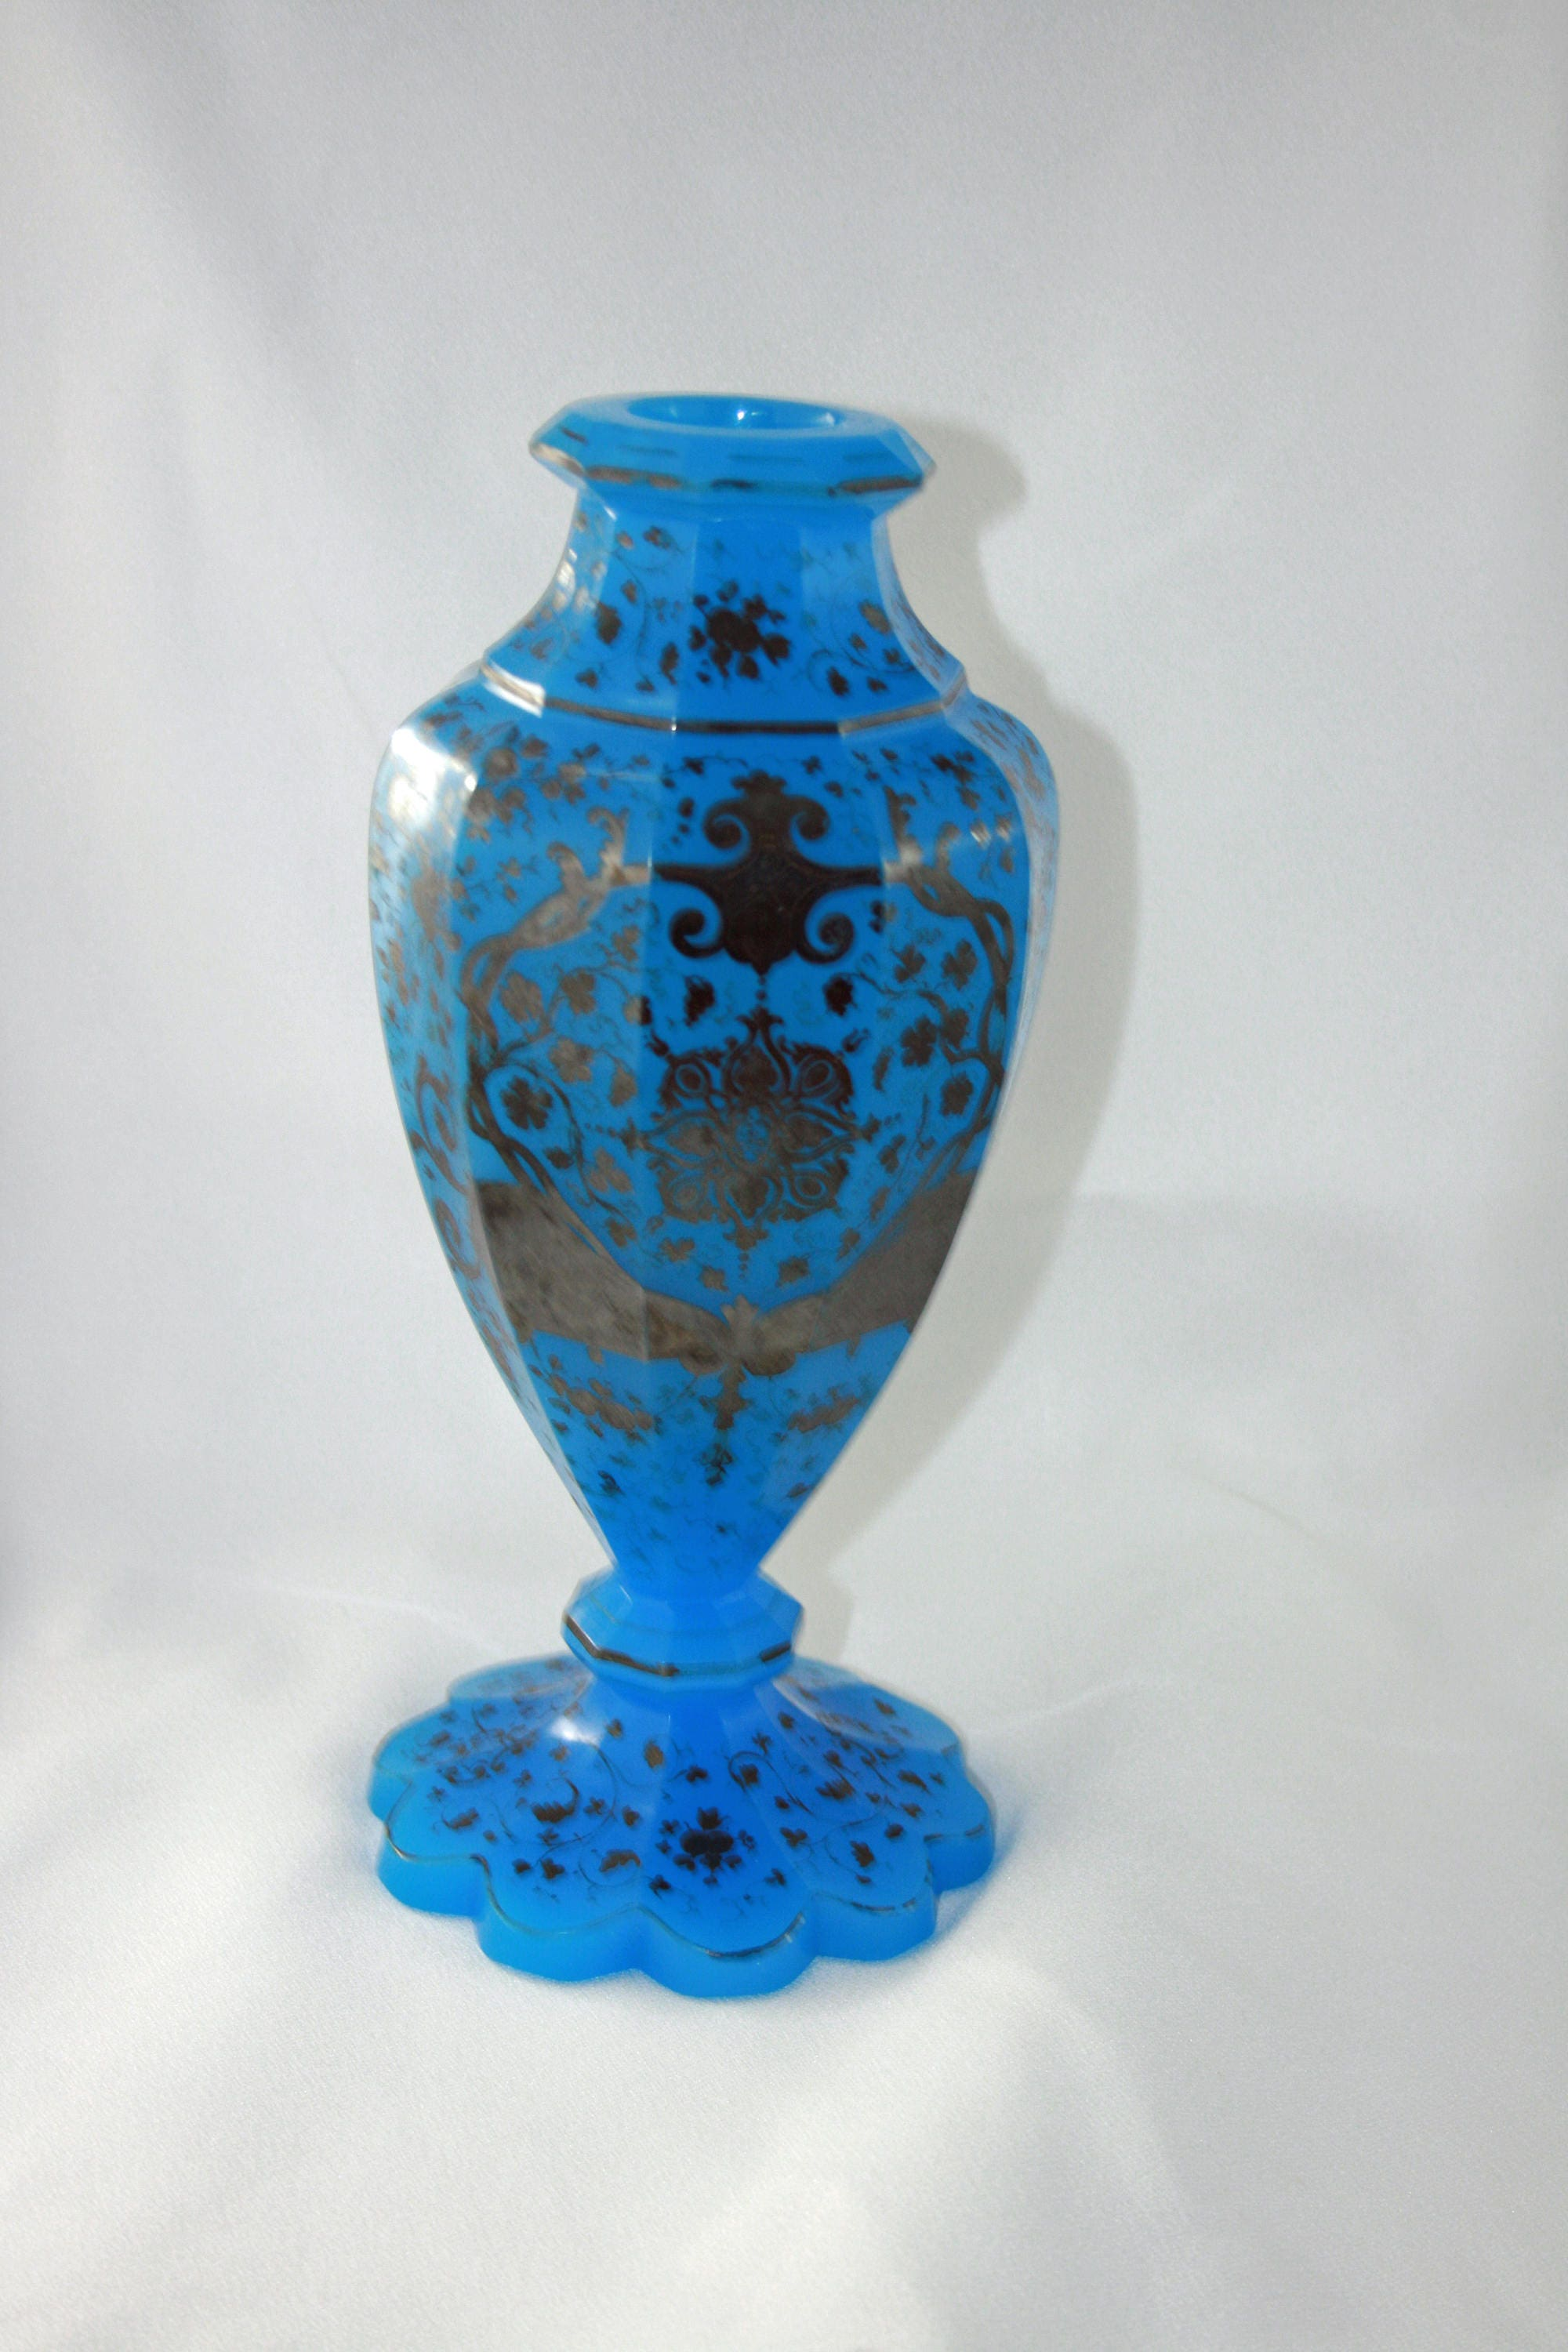 Antique french blue opaline glass vase hand blown with hand antique french blue opaline glass vase hand blown with hand painted silver gilding design 1800 to 1890 made in france venetian milk glass floridaeventfo Gallery